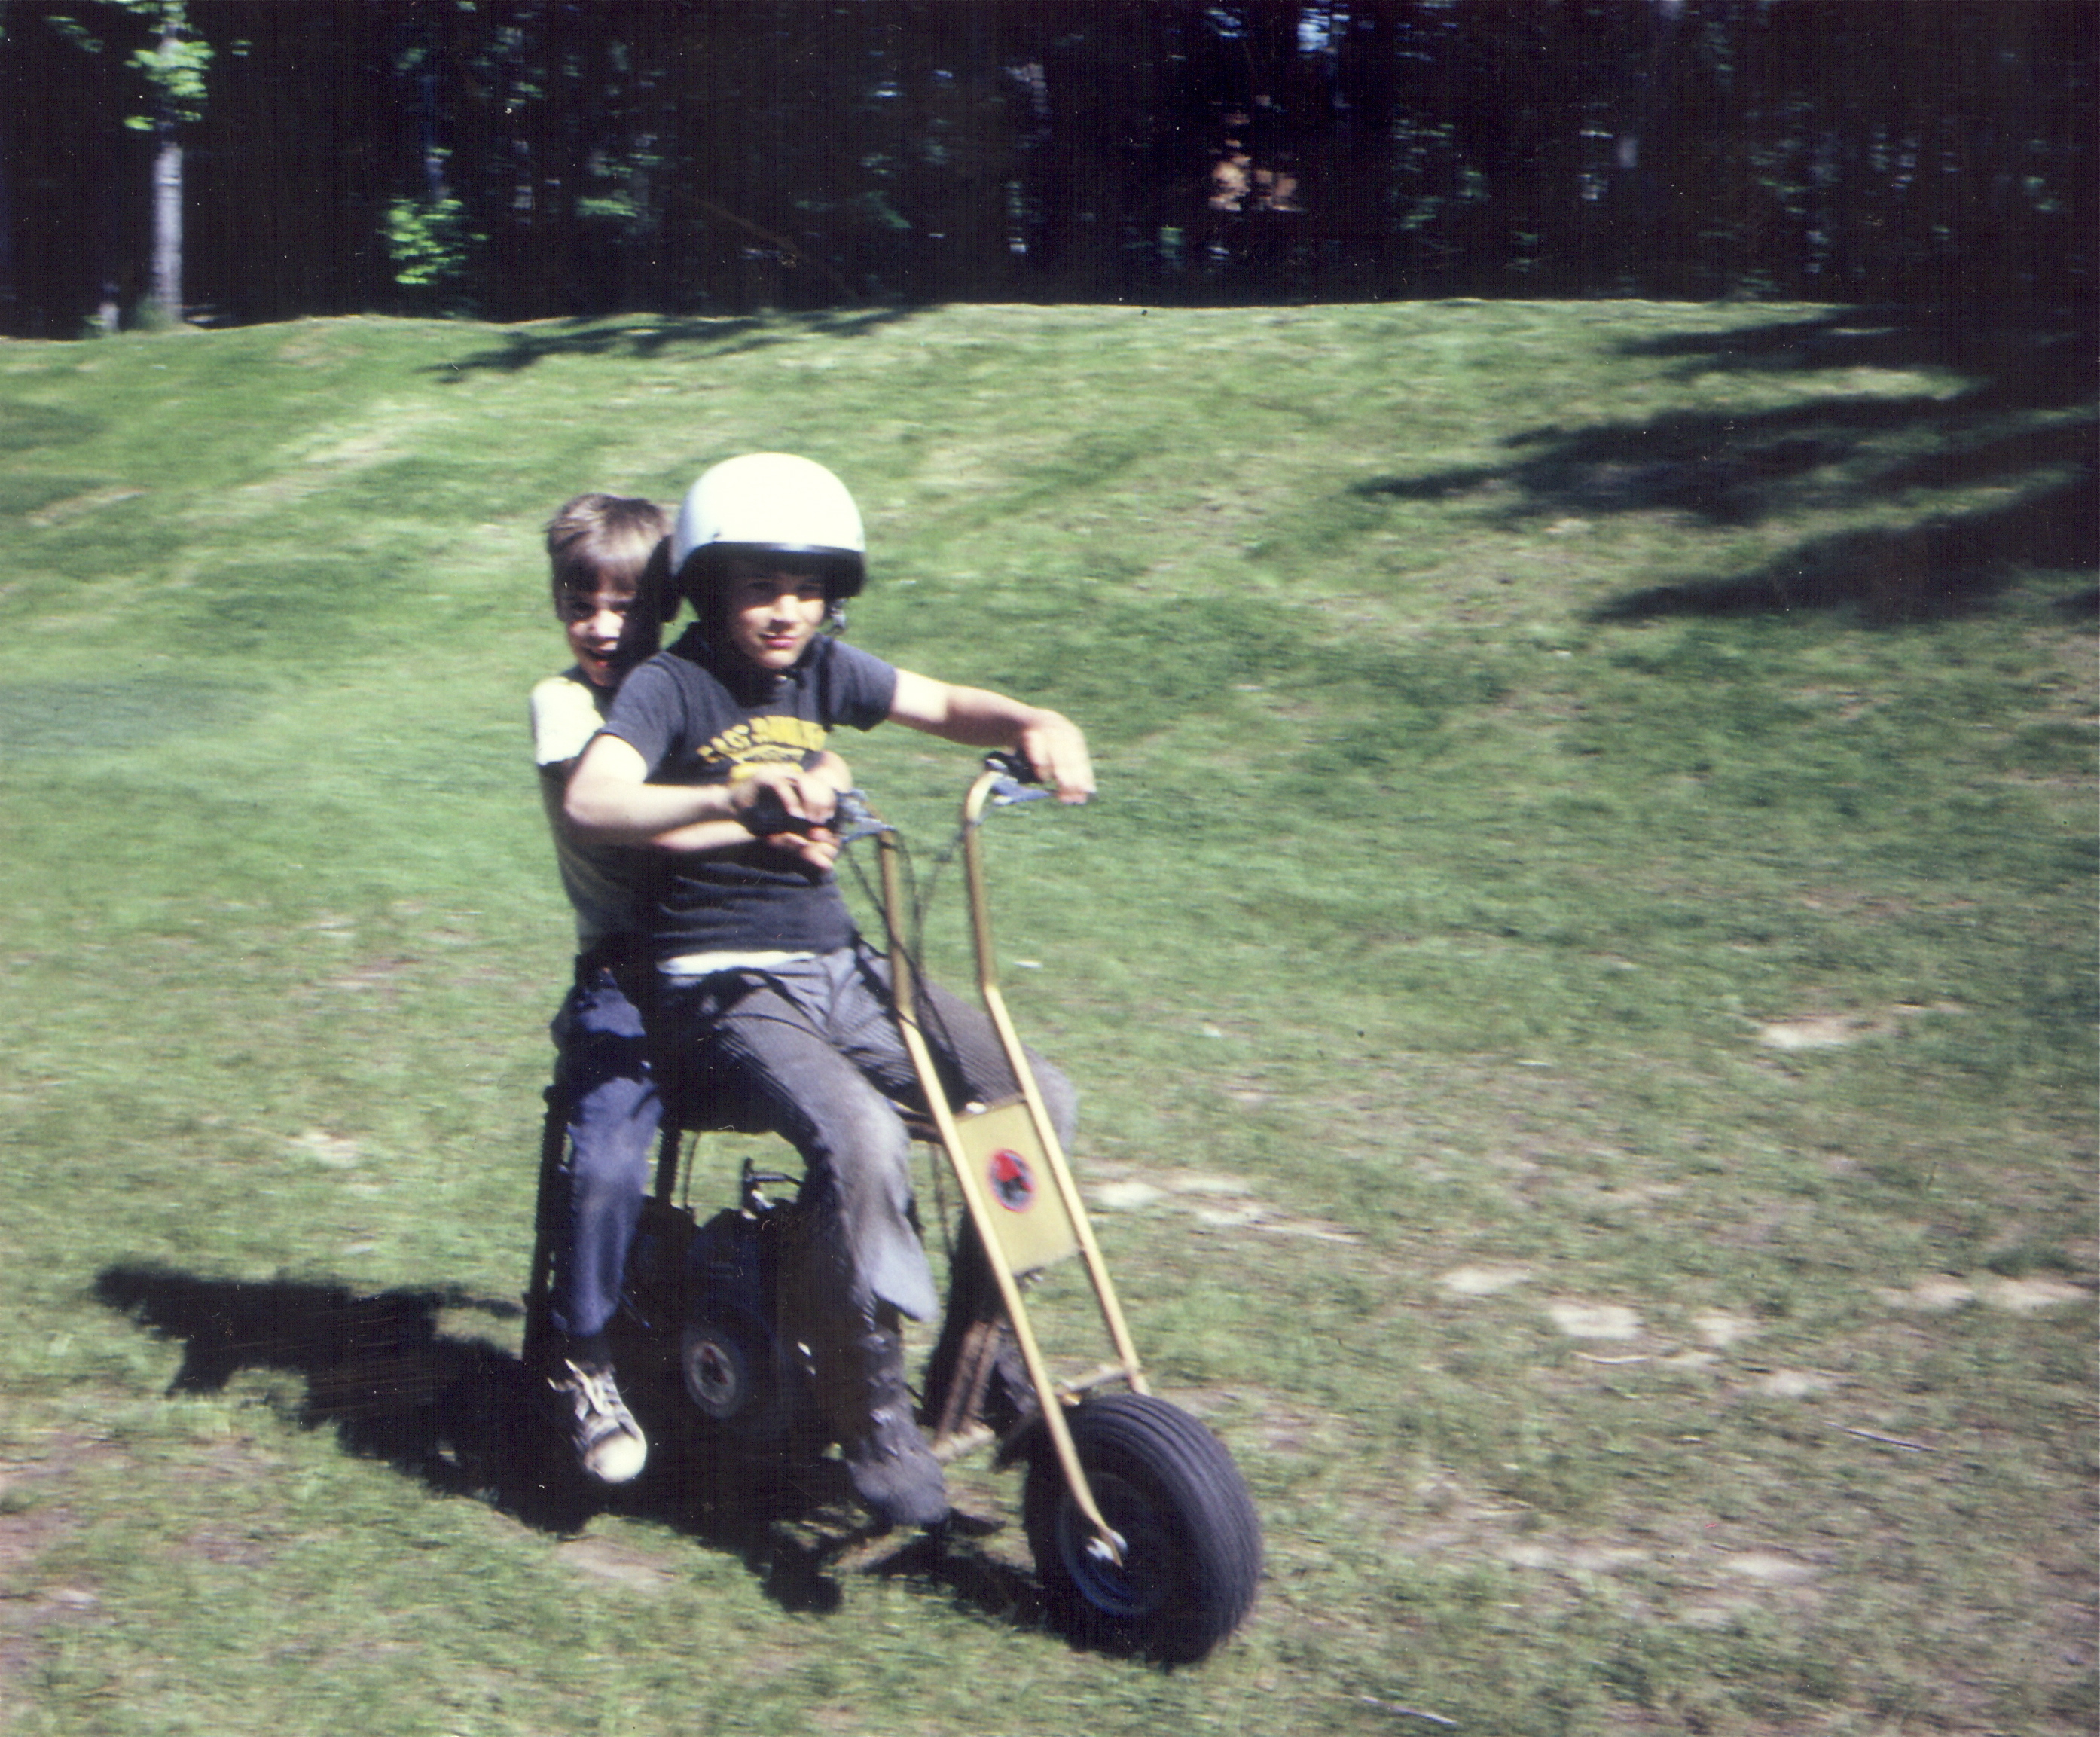 My brother John giving me my first ride on a minibike.